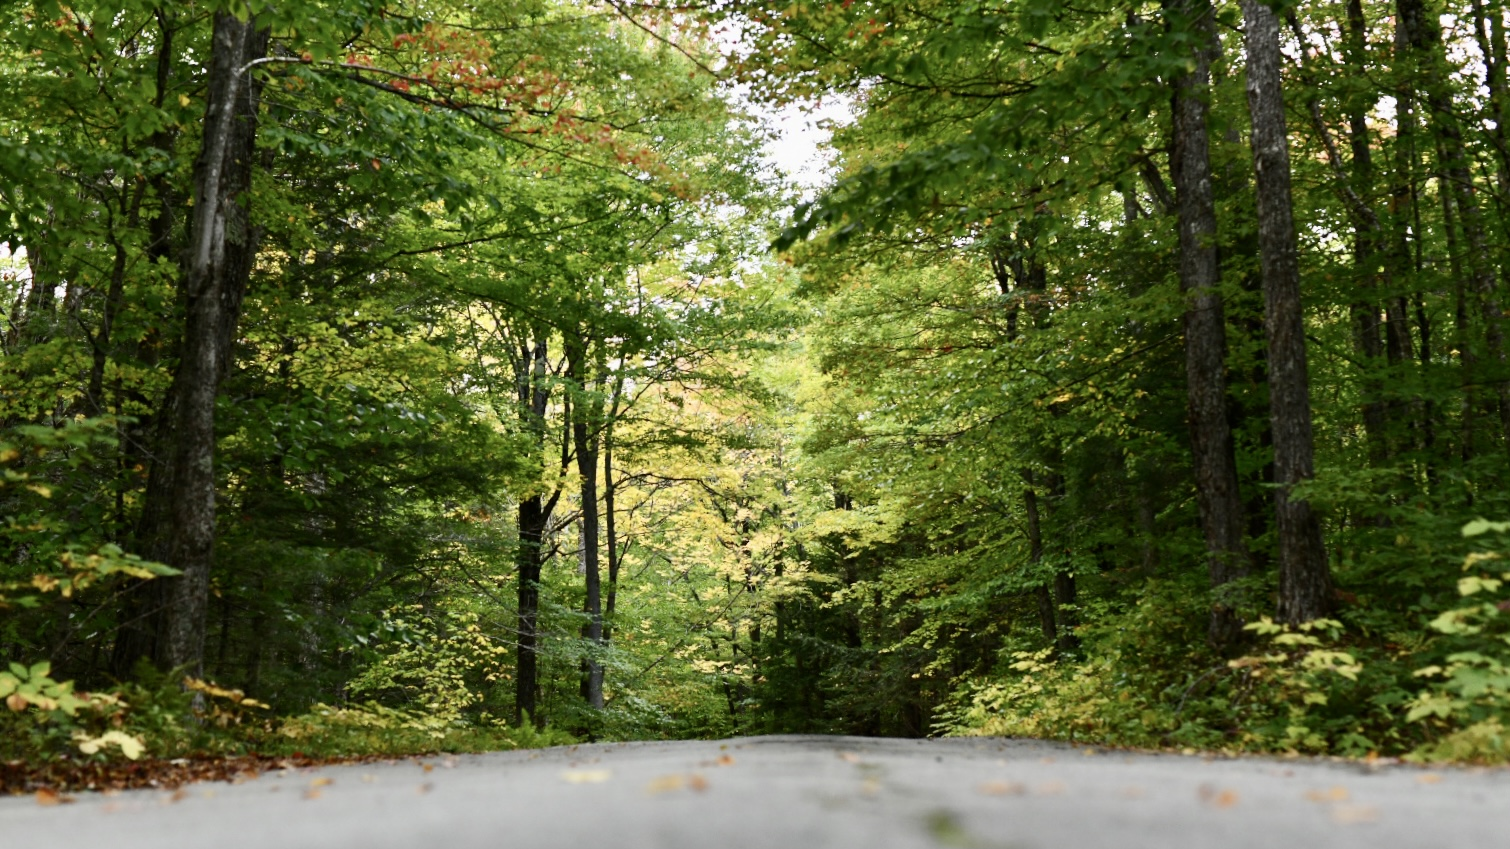 Photograph from low perspective of a woodland road. 2021. Taryn Okesson. Digital Photography. White Mountain National Forest, New Hampshire.